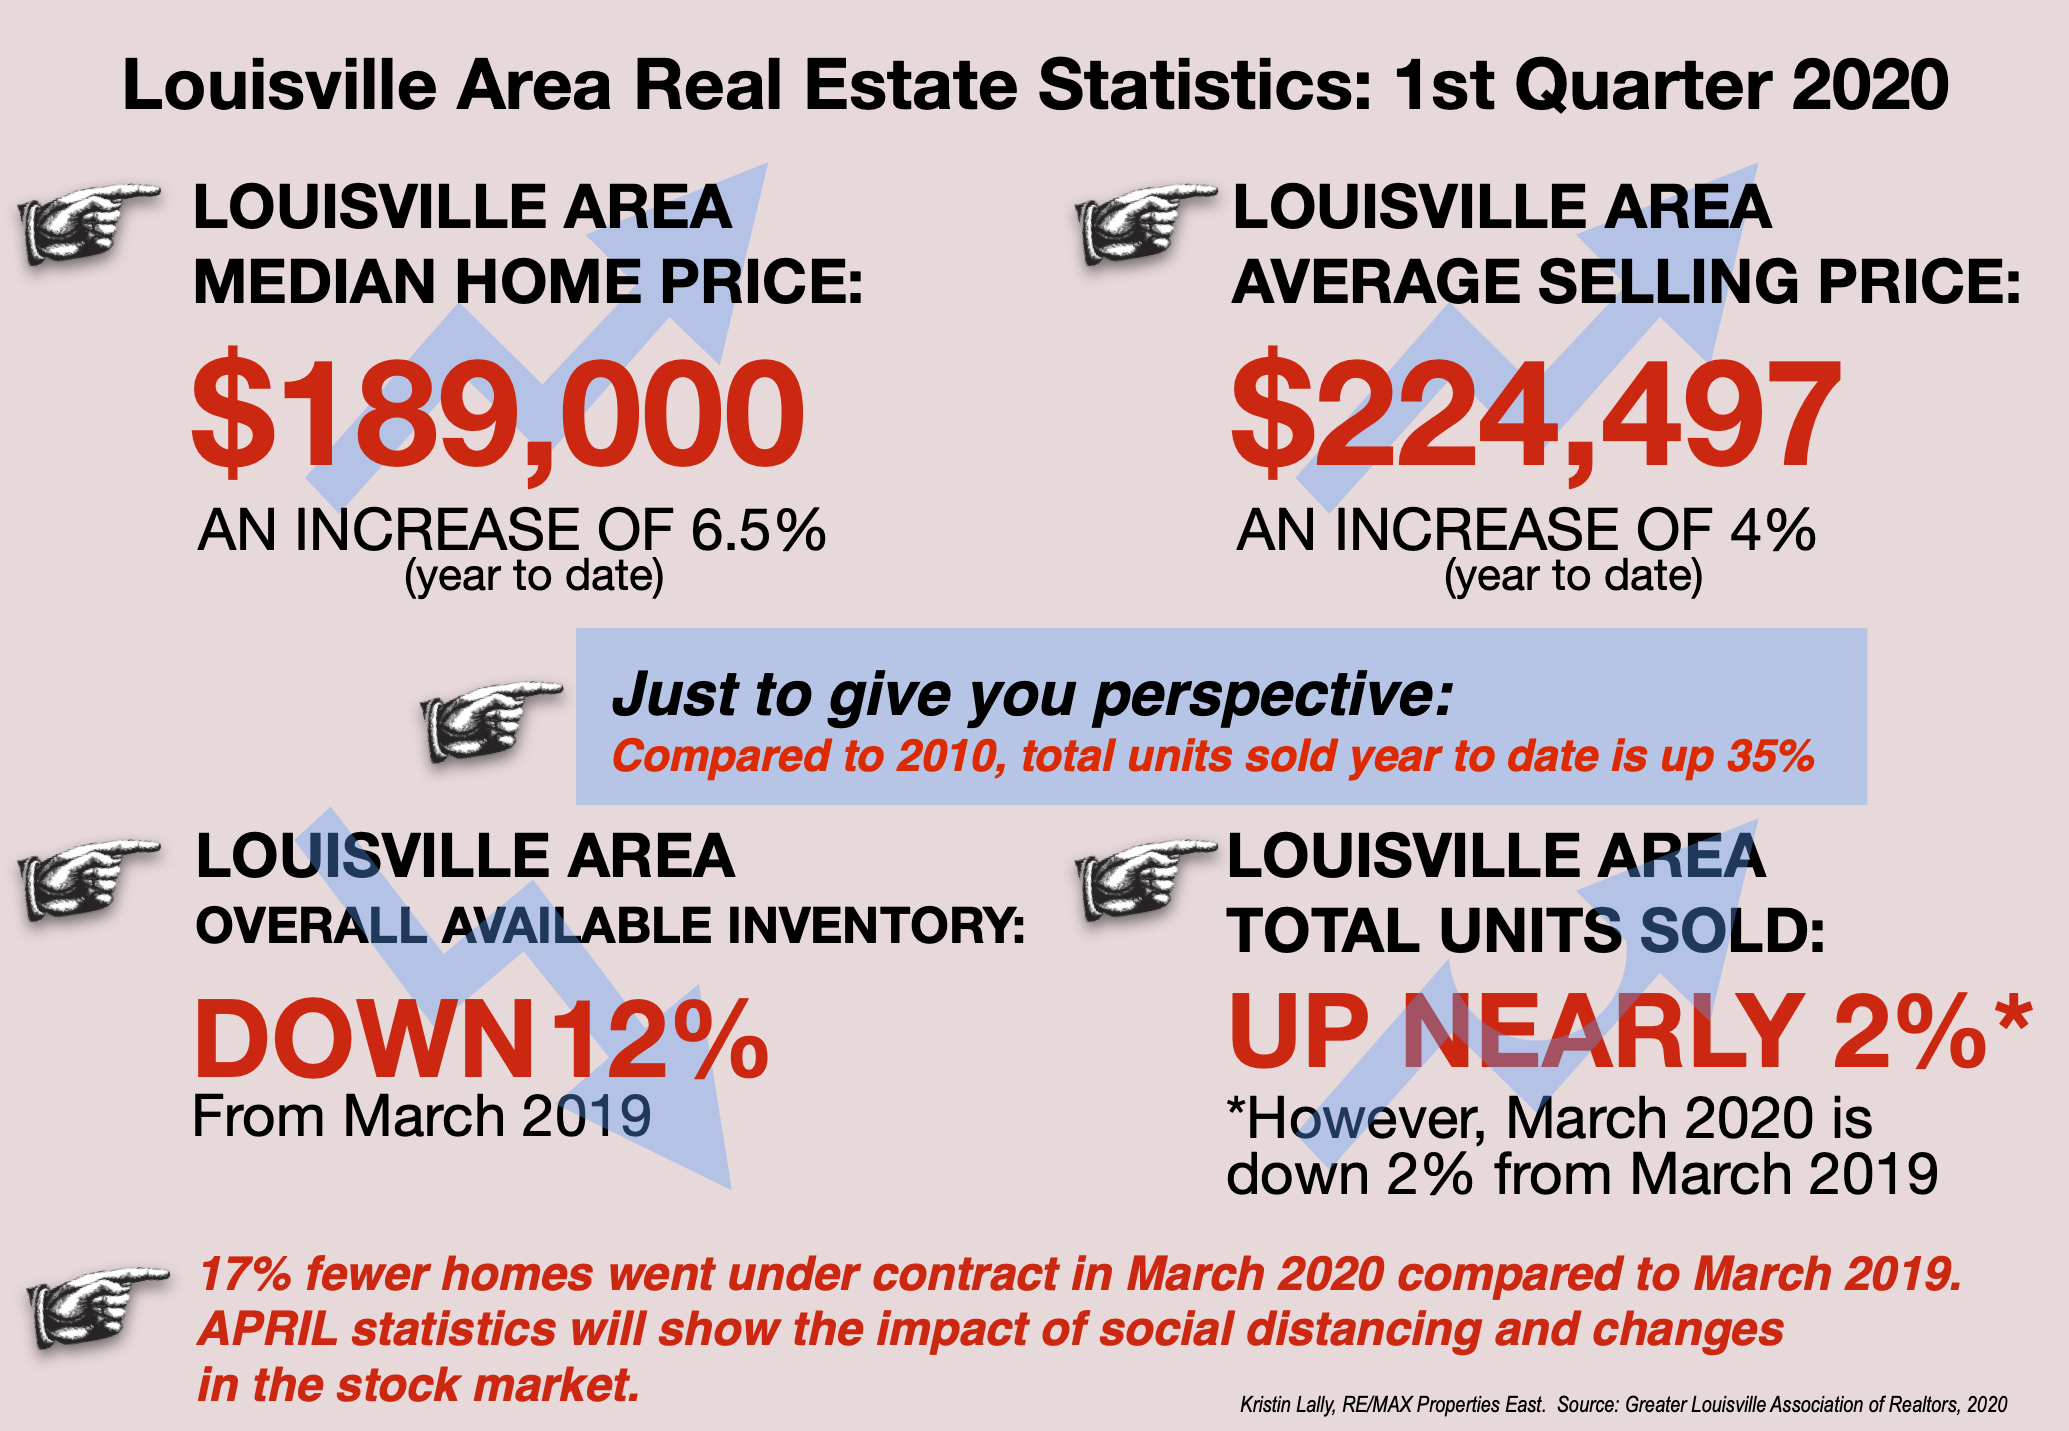 Q1'20 Real Estate Statistics